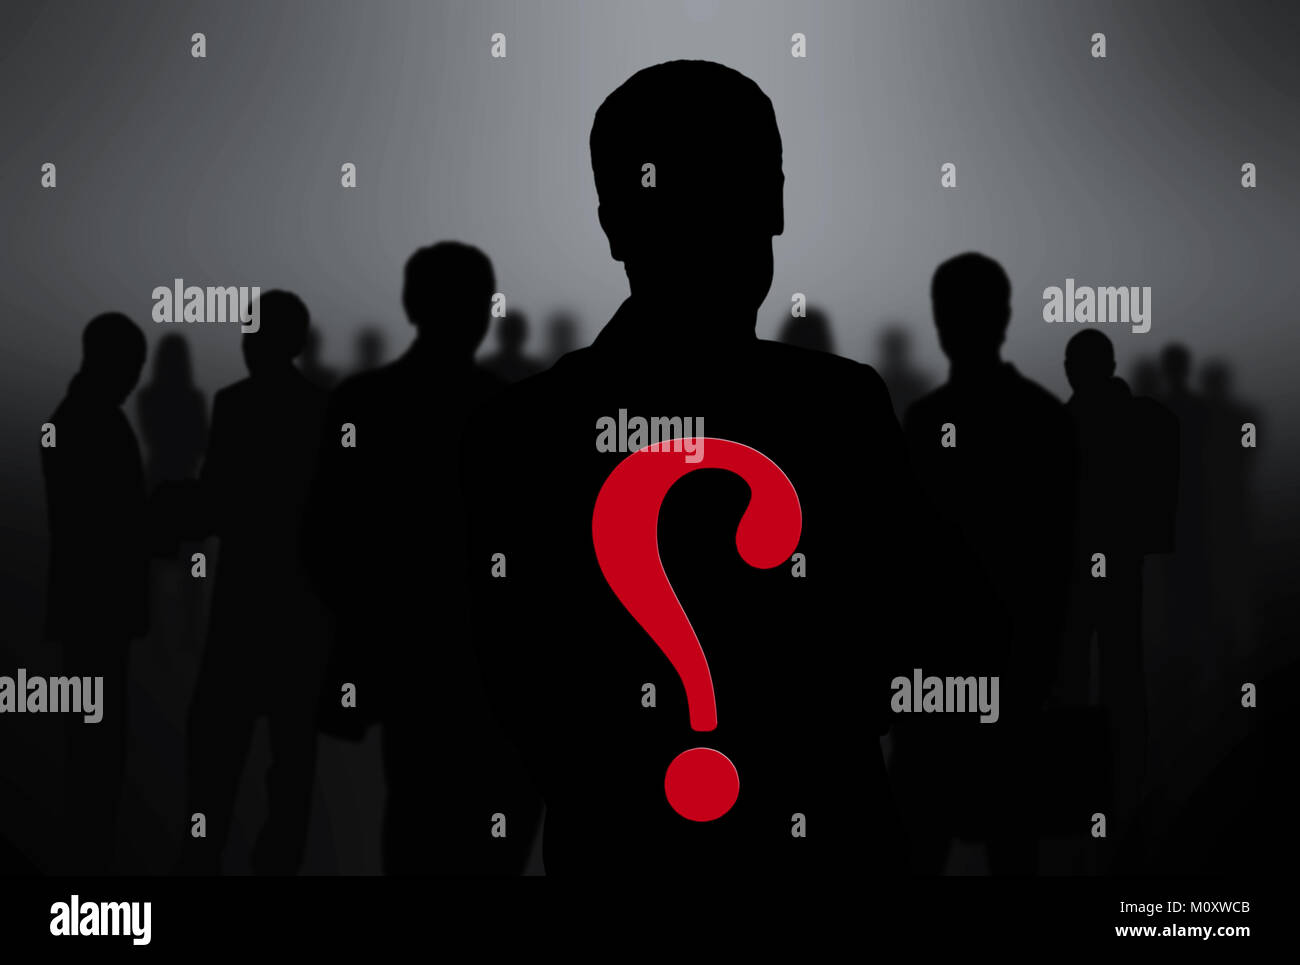 black silhouettes of business people. Stock Photo